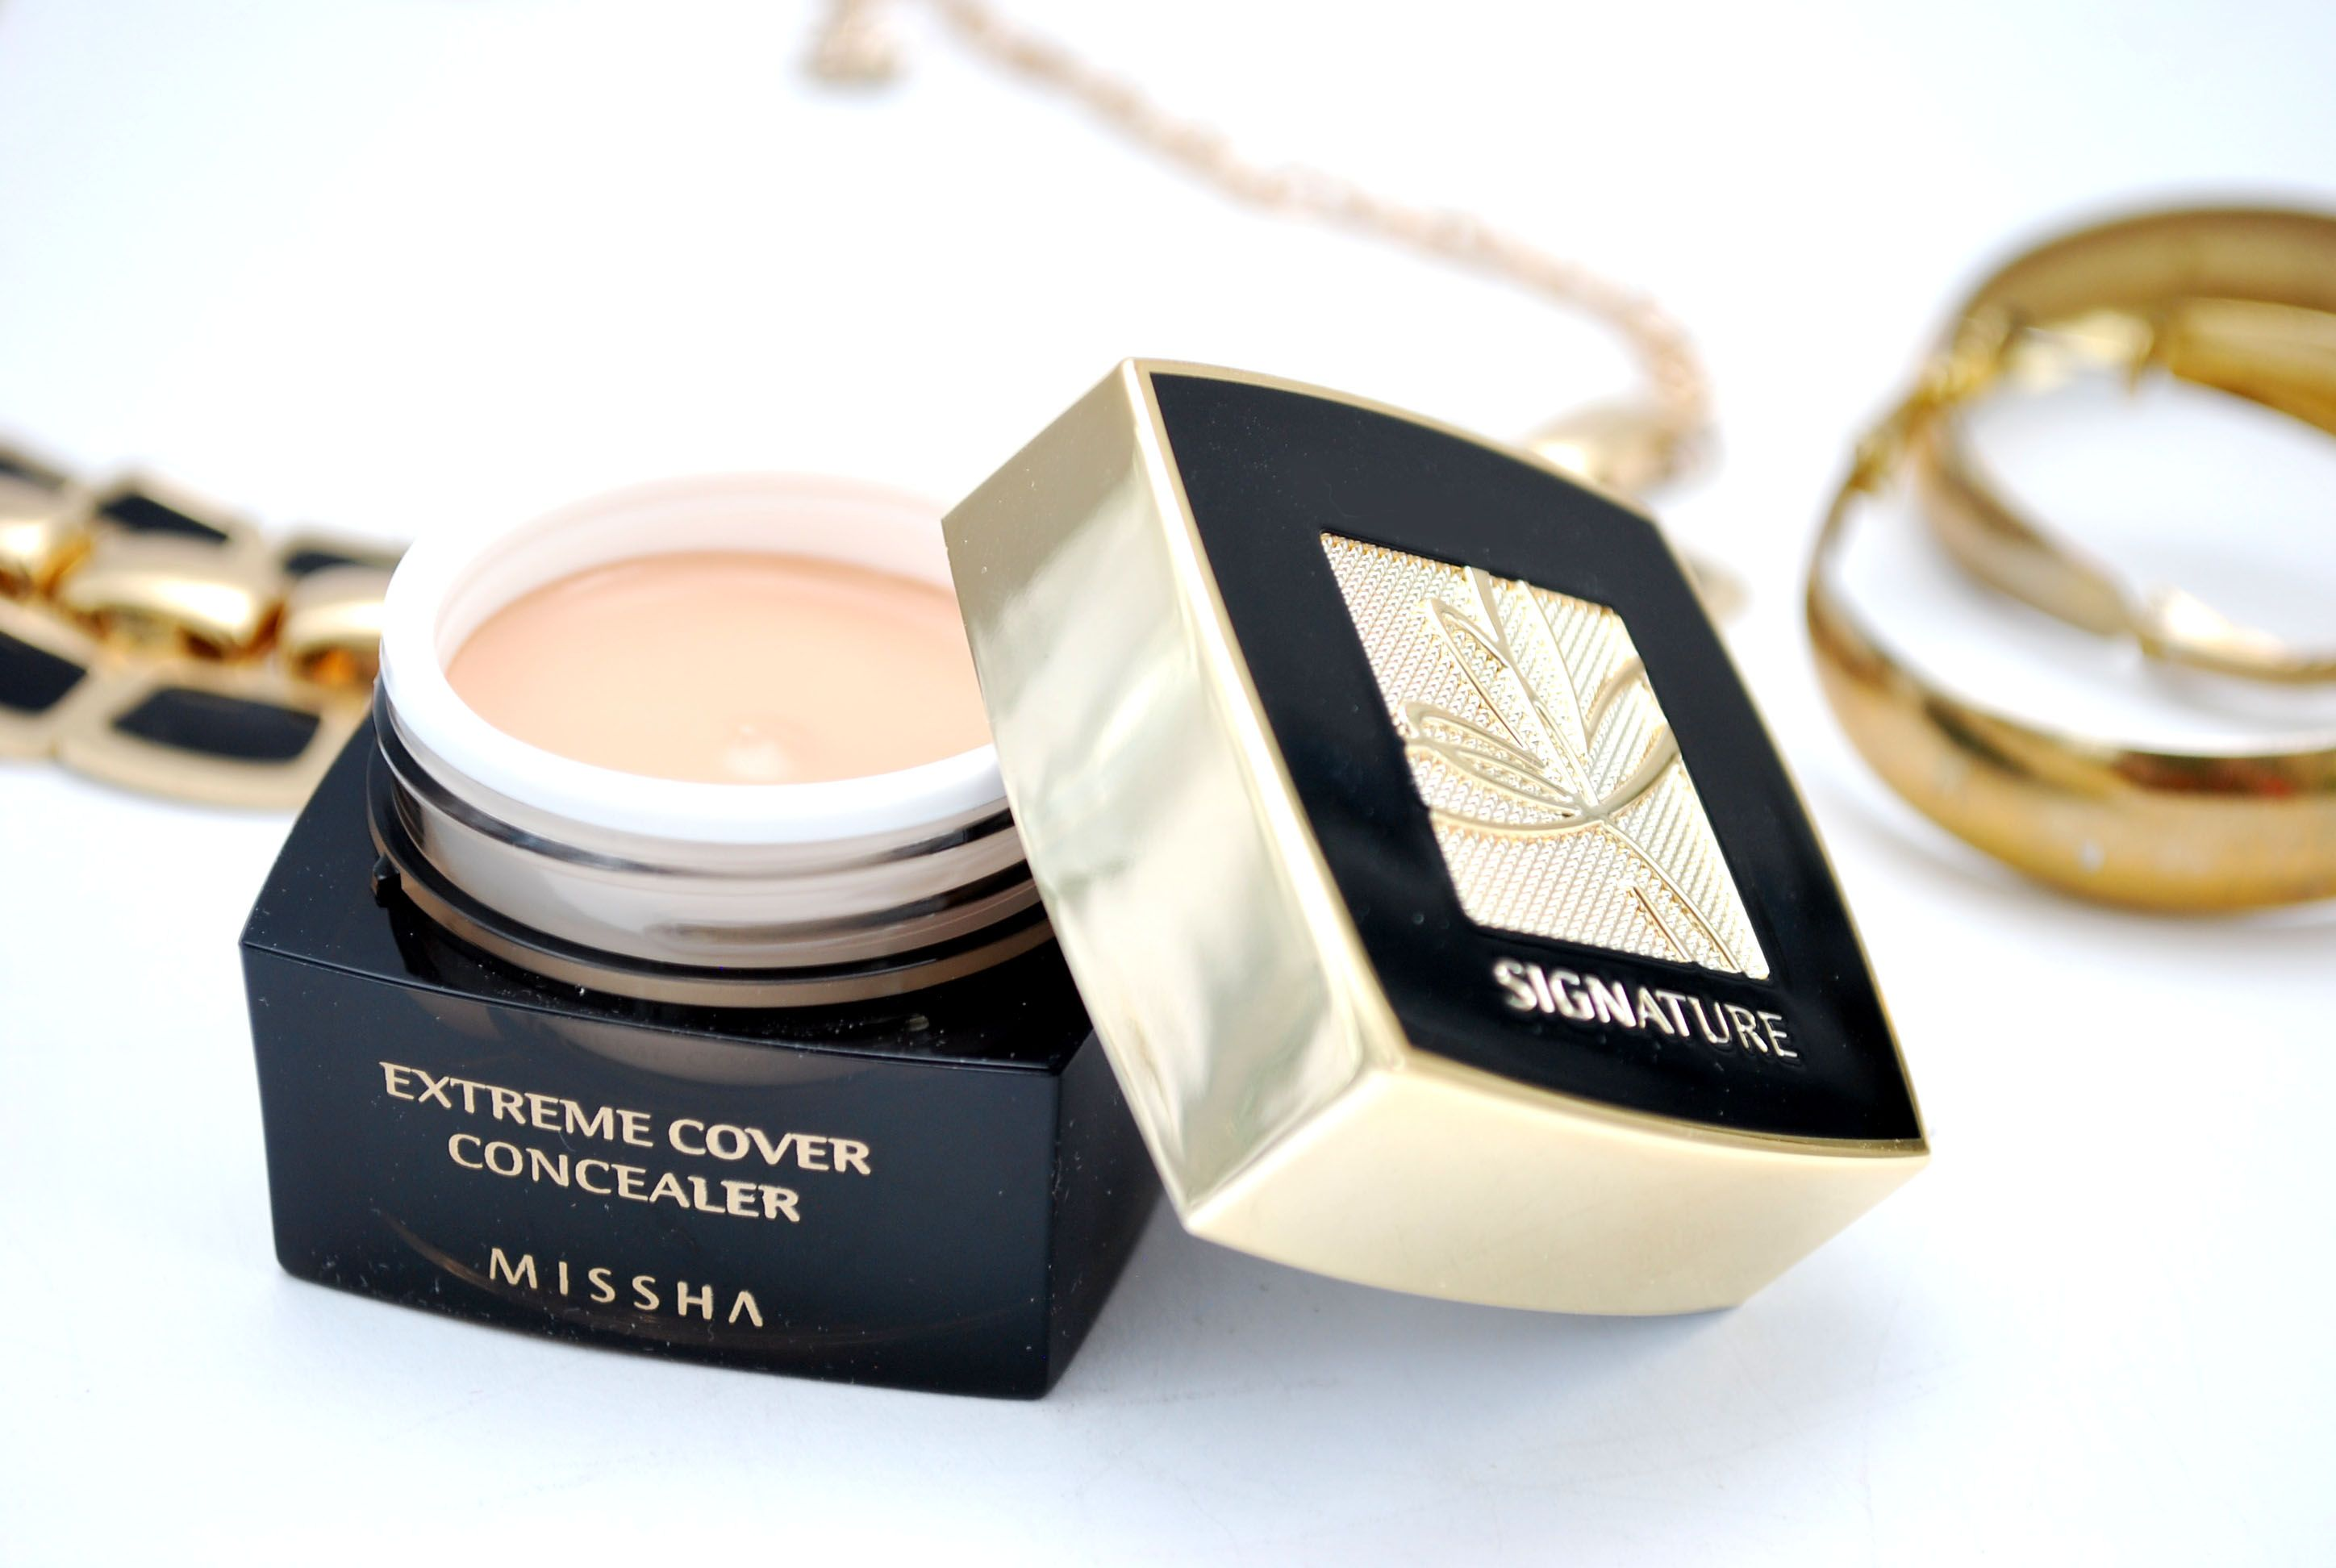 Review Missha Signature Extreme Cover Concealer #21 Light Beige - Ceetje